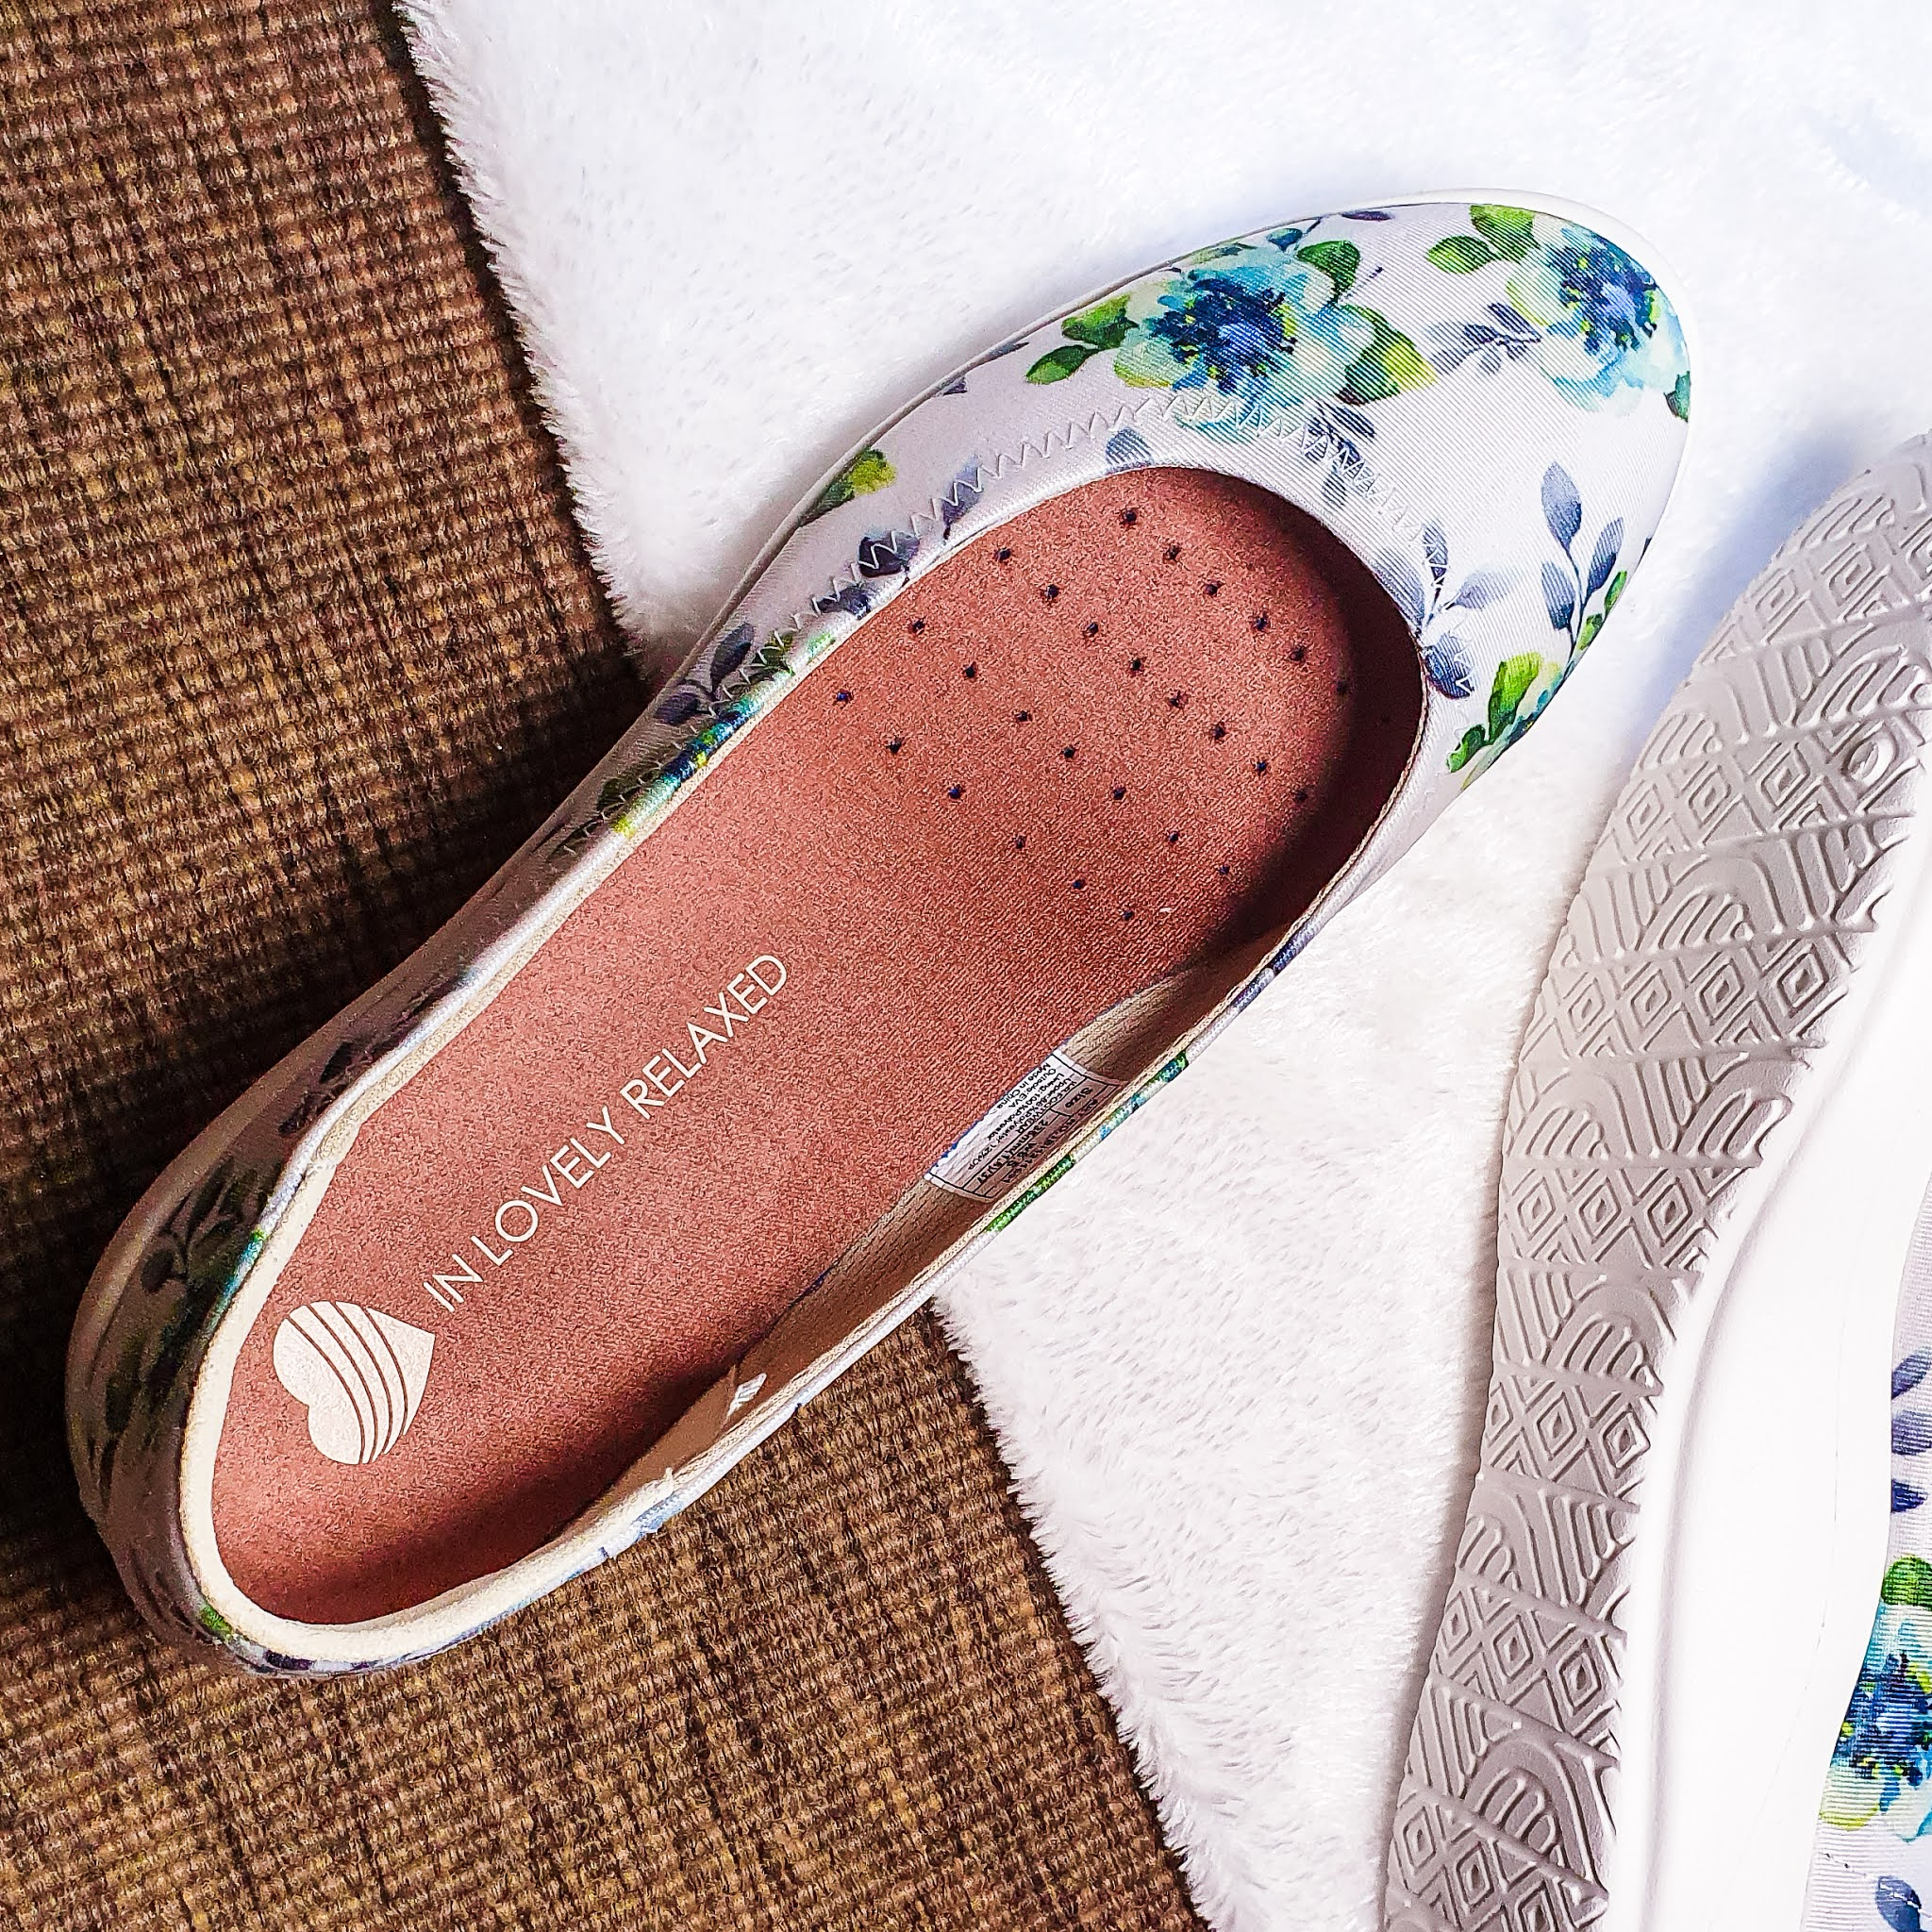 see the thickness of the breathable insole